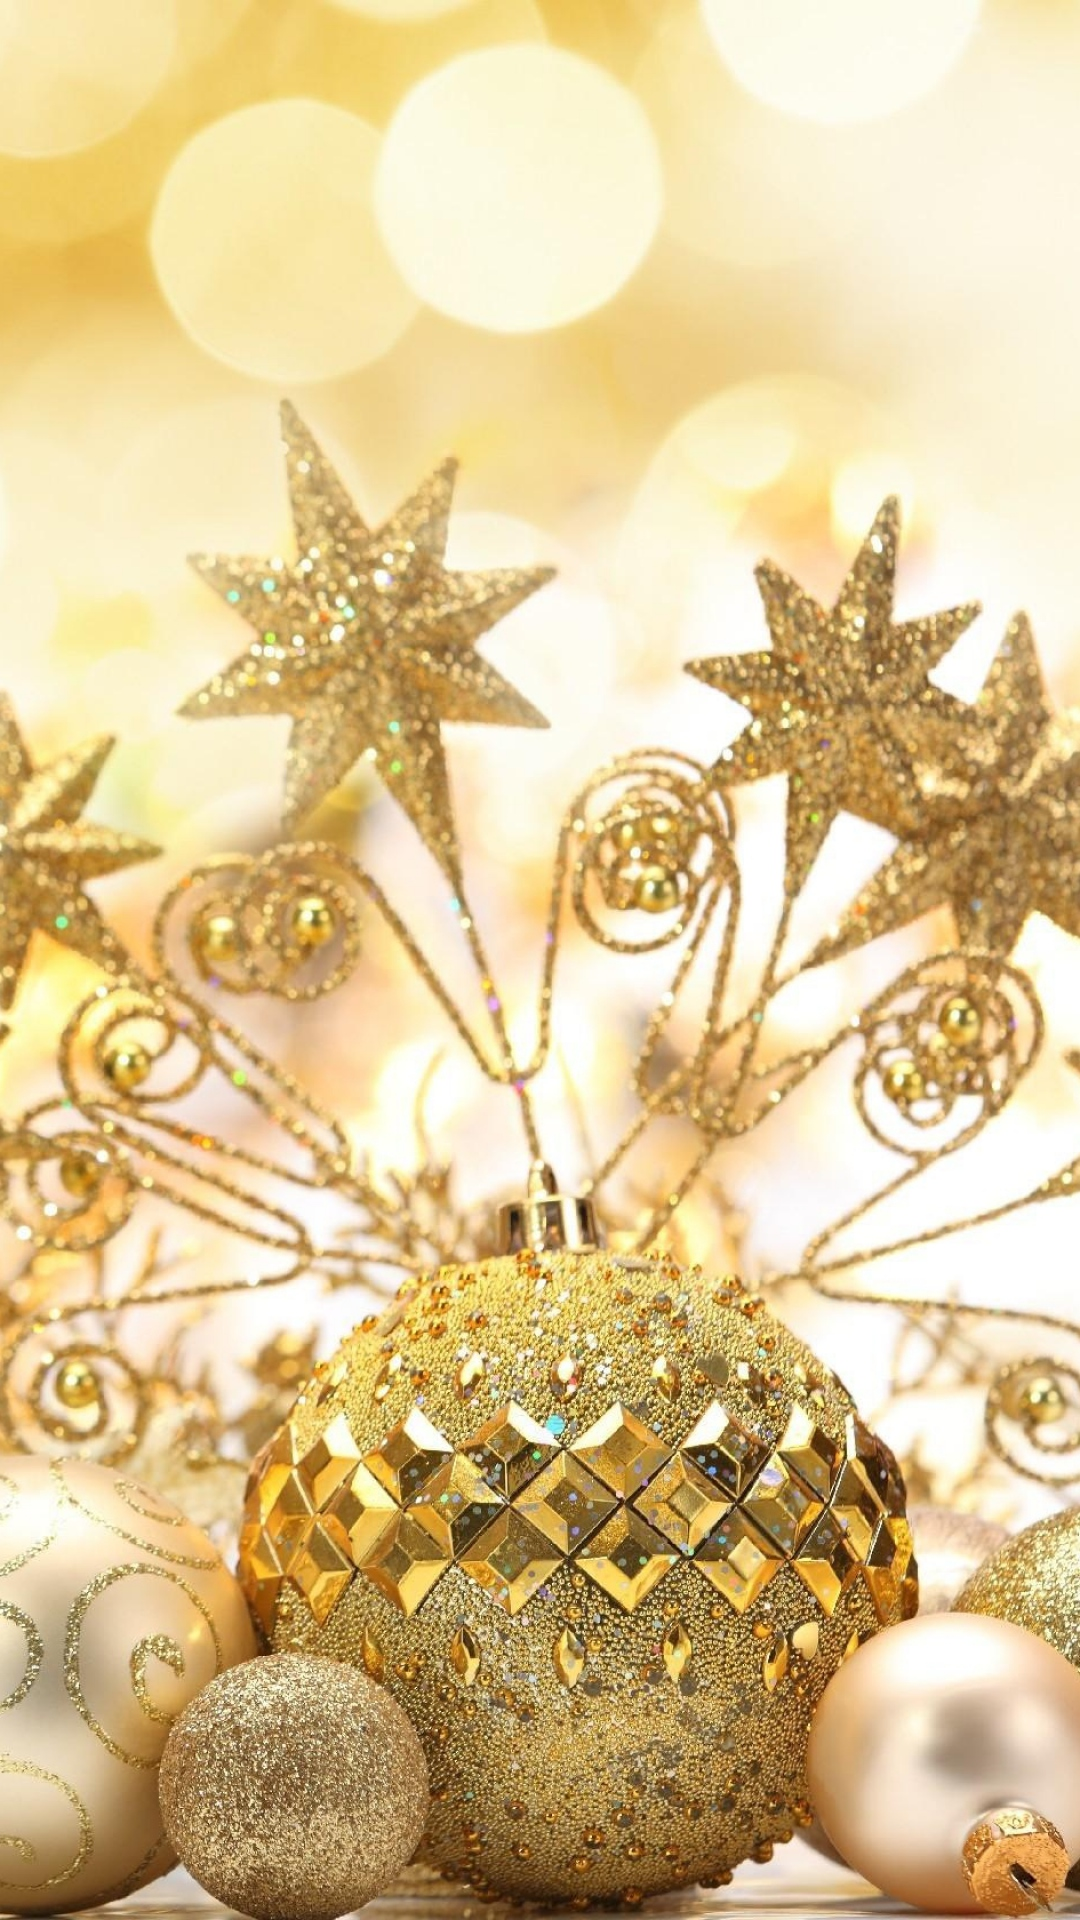 Free Download Happy New Year 2015 Wallpapers For Iphone And Ipad